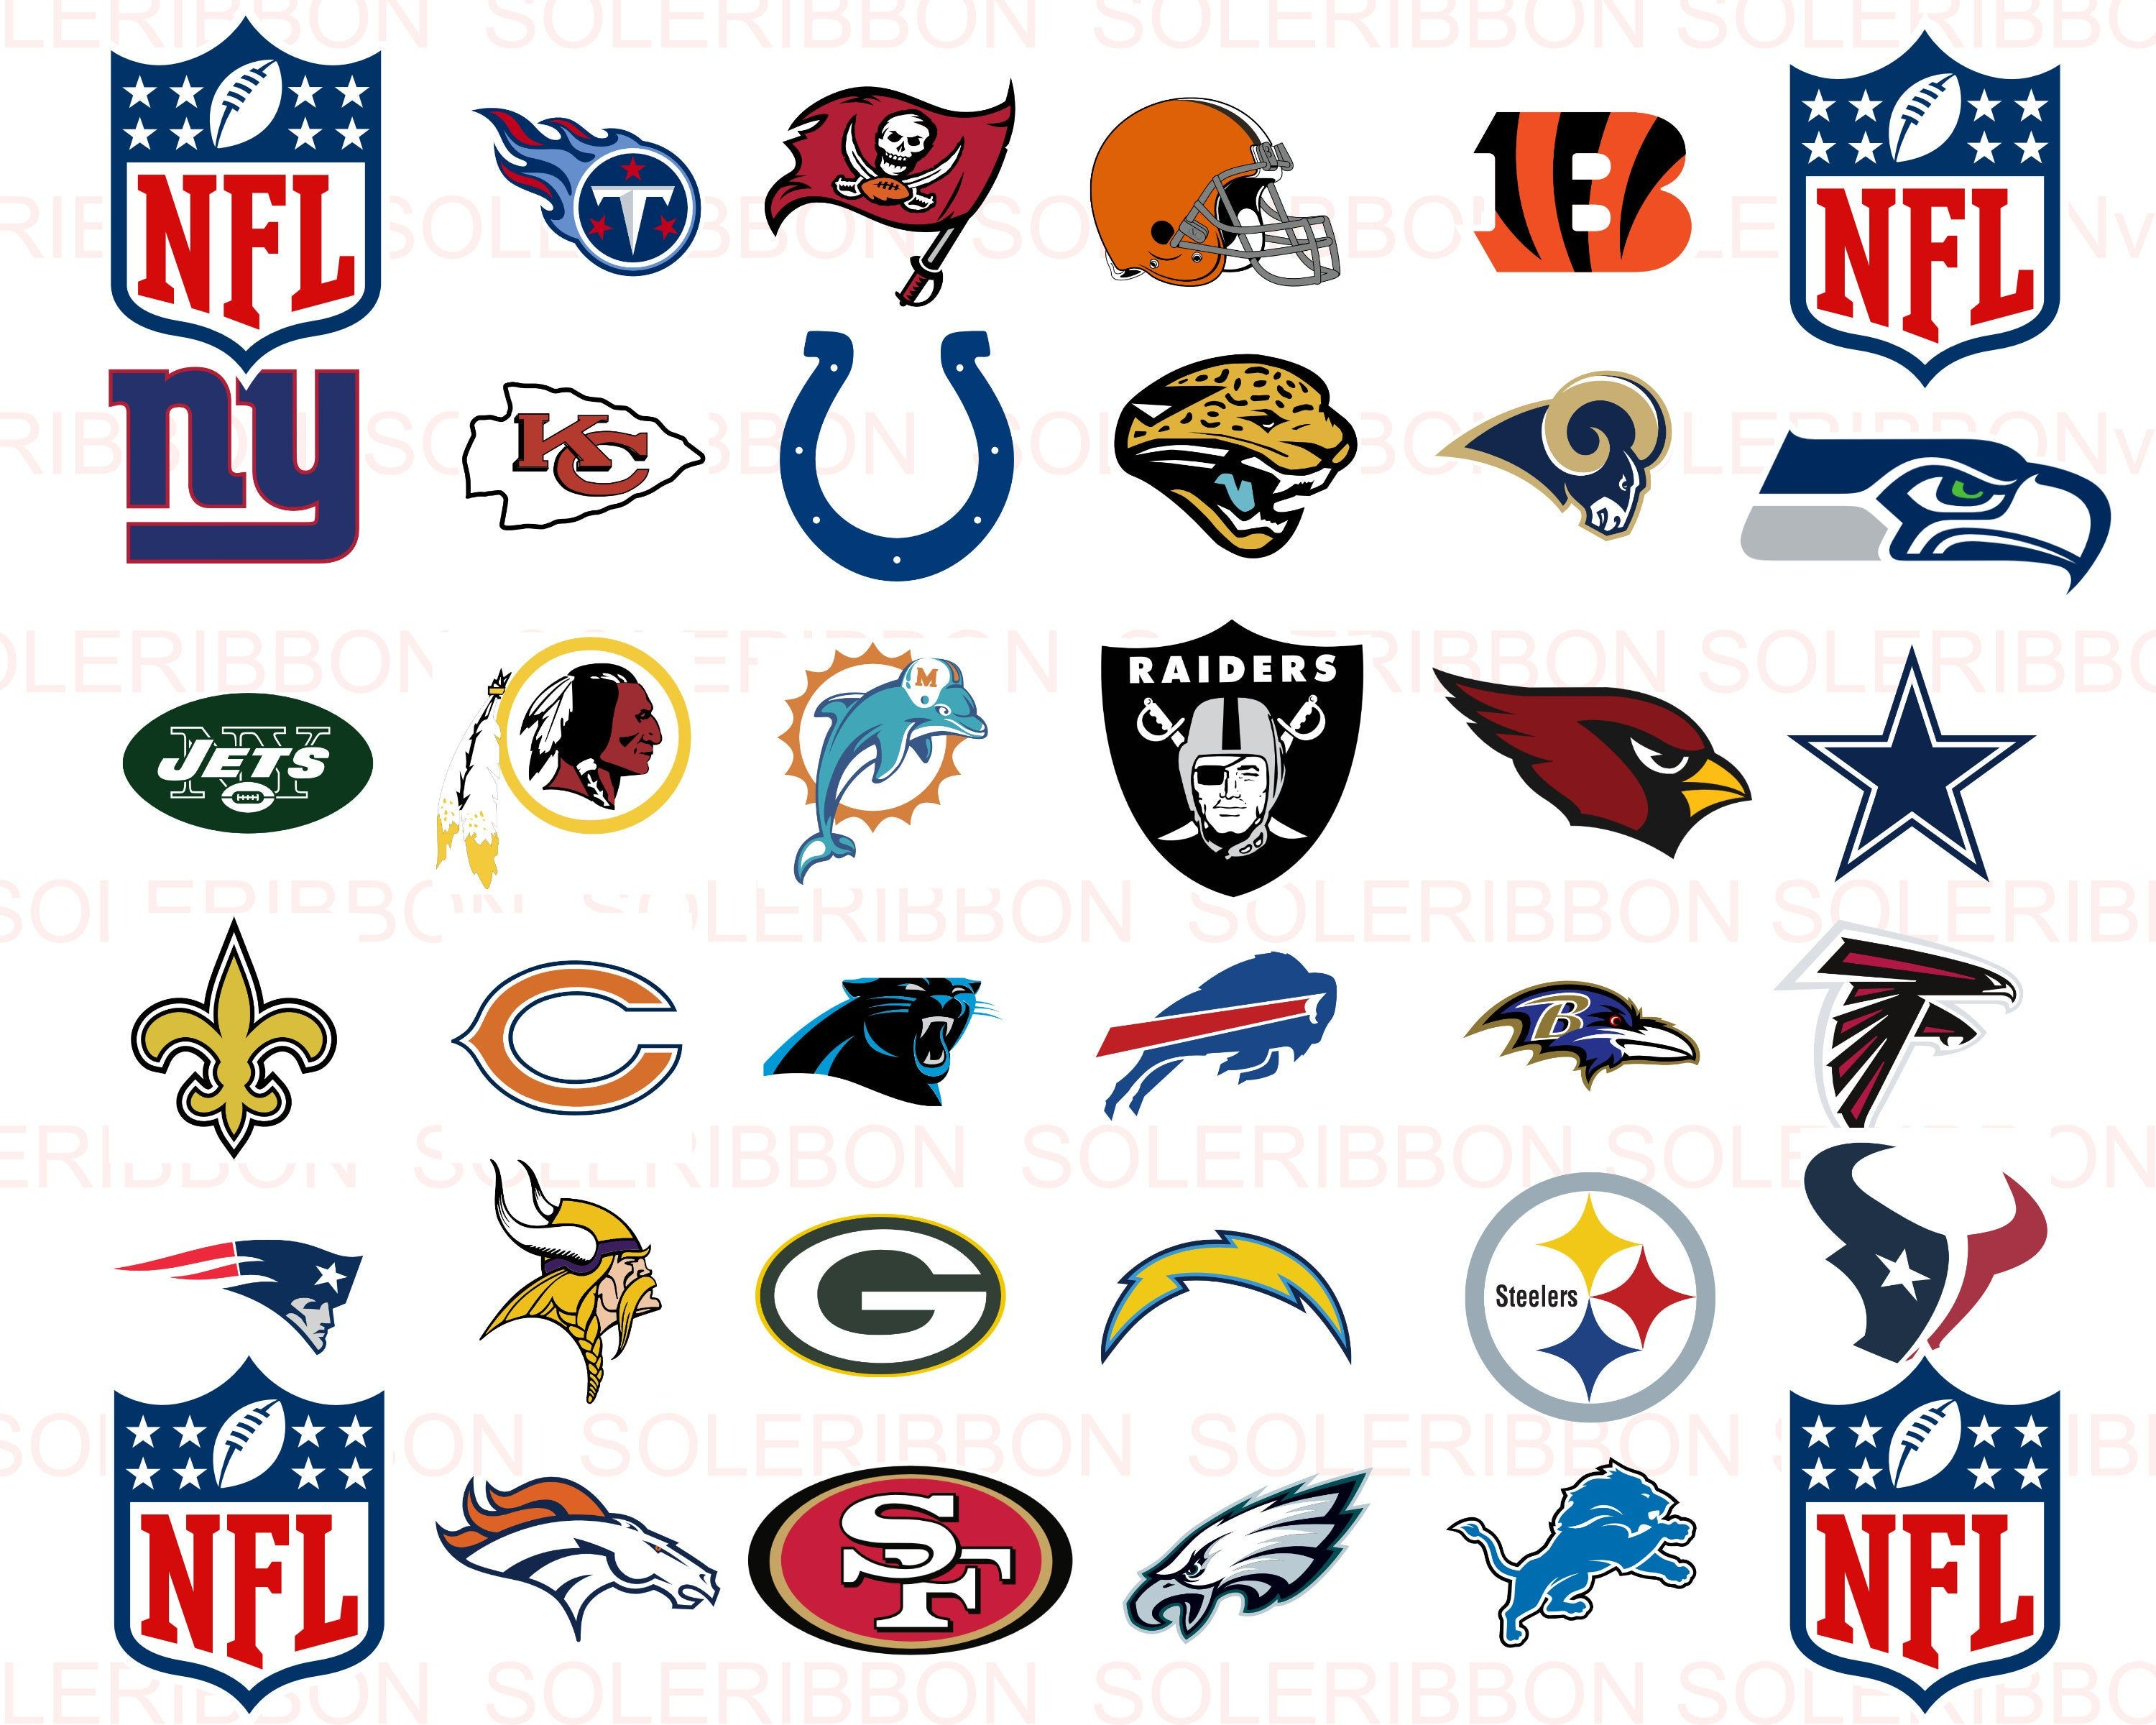 Pin By Roni Nelson On Nfl Nfl Football Logos All Mlb Teams Nfl Teams